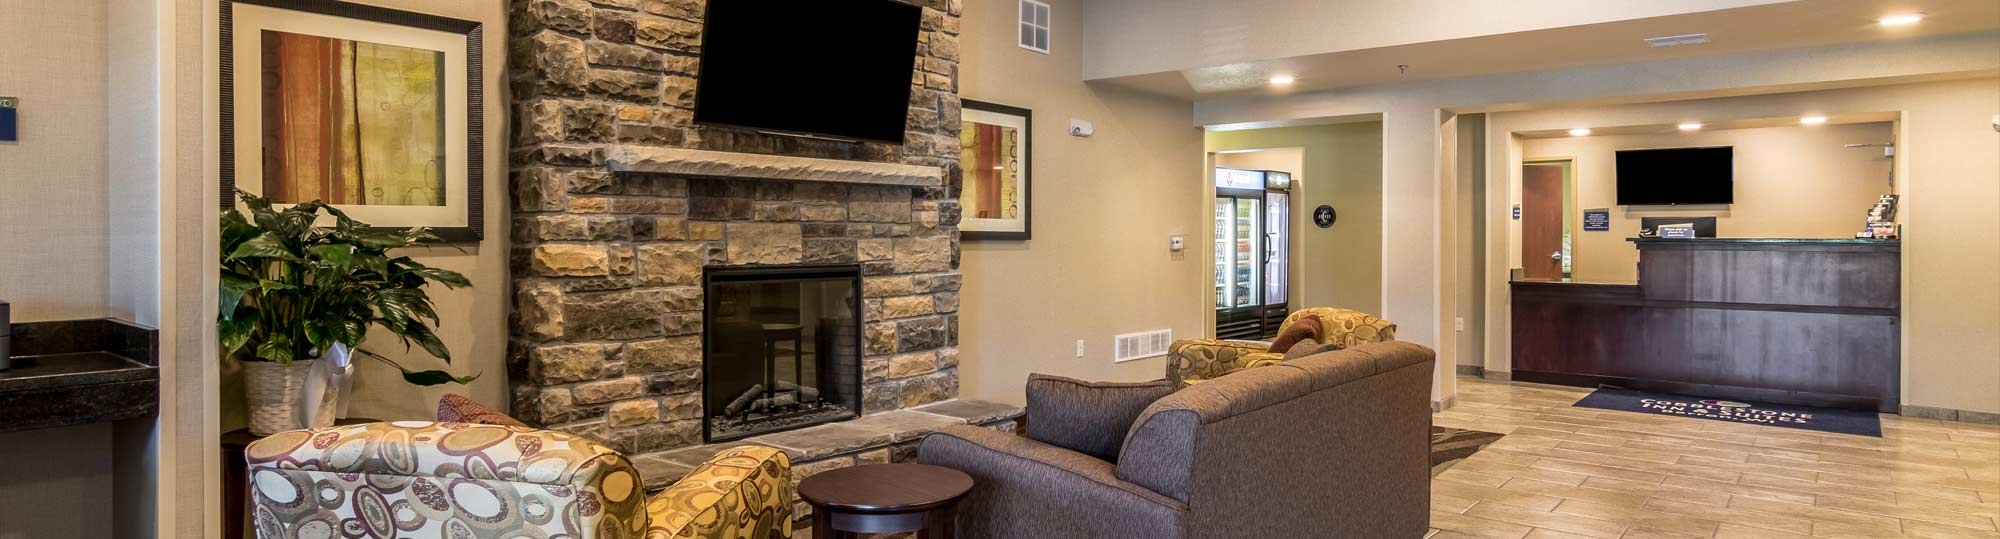 Cobblestone Inn & Suites Barron